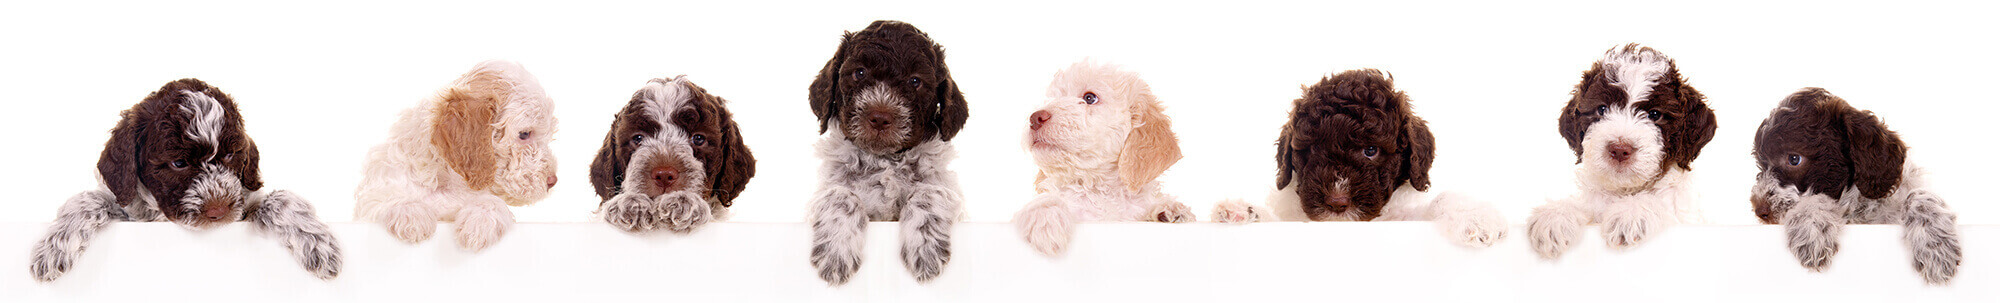 puppy and dog training, abingdon, wantage, didcot, harwell, steventon, oxford, wallingford